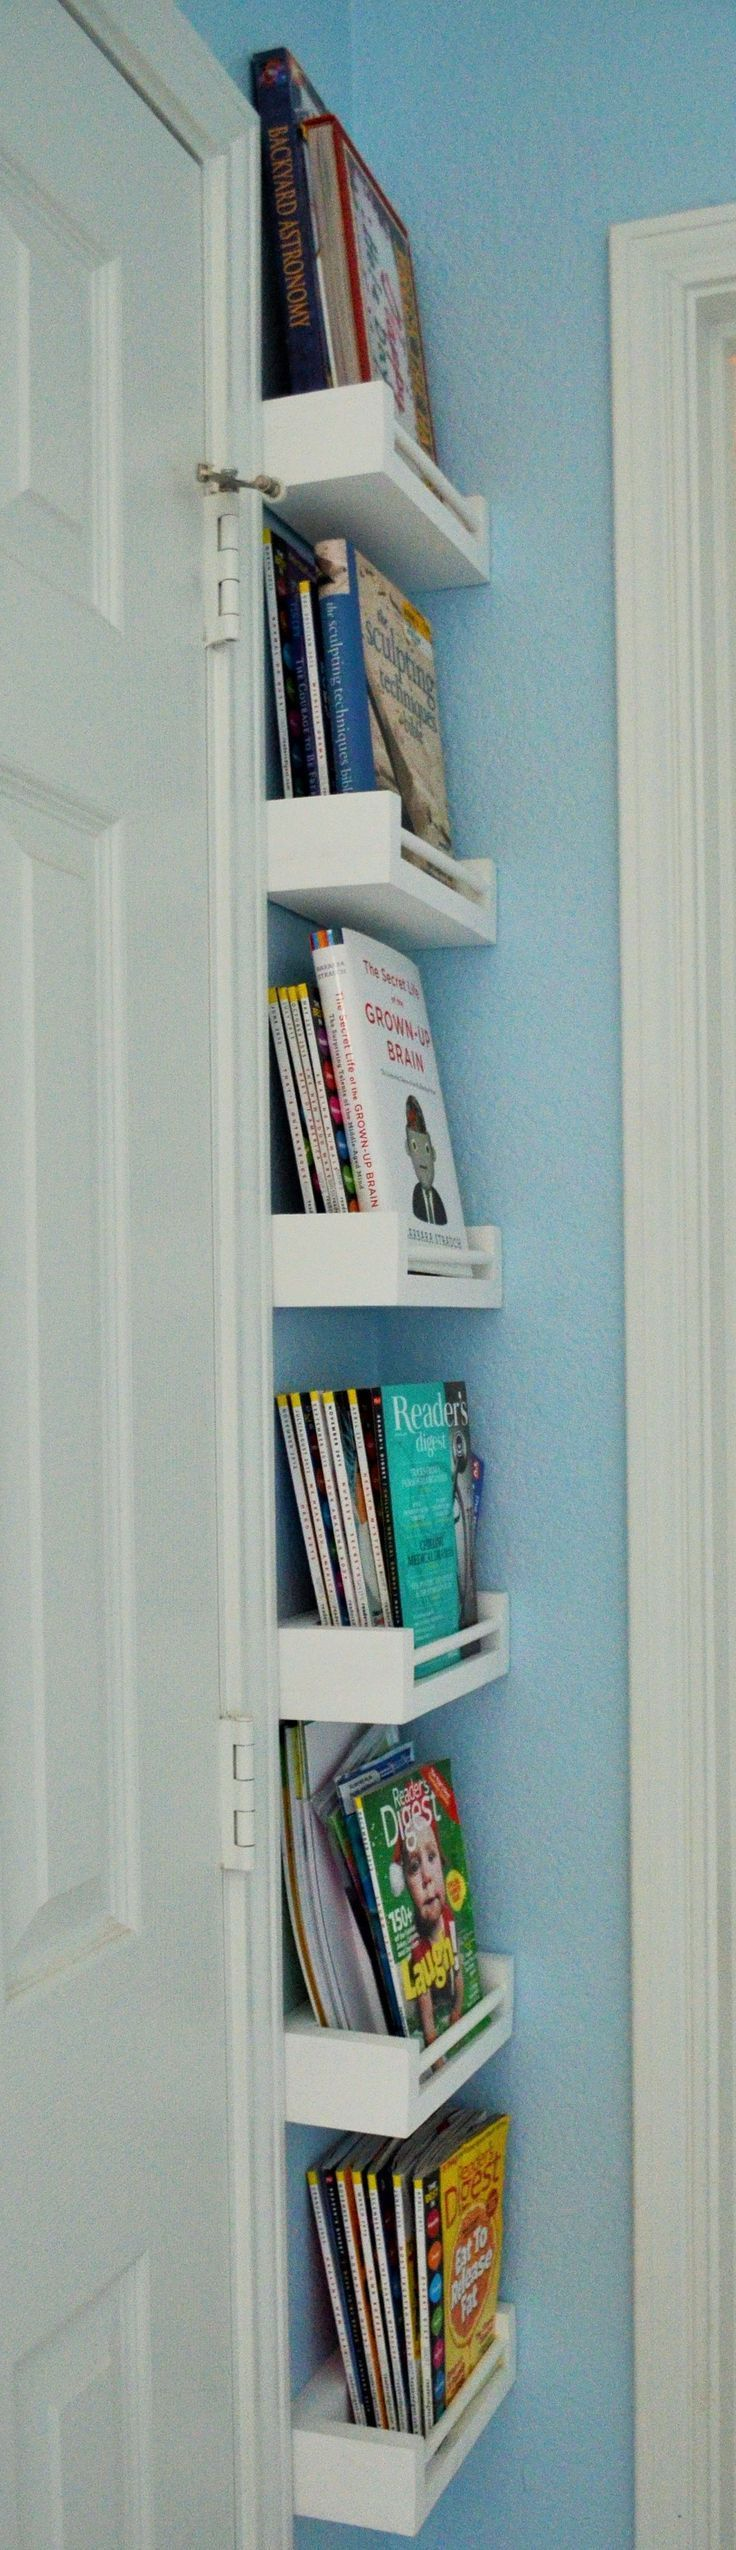 Small Corner Bookshelves. Work great for behind door in playroom